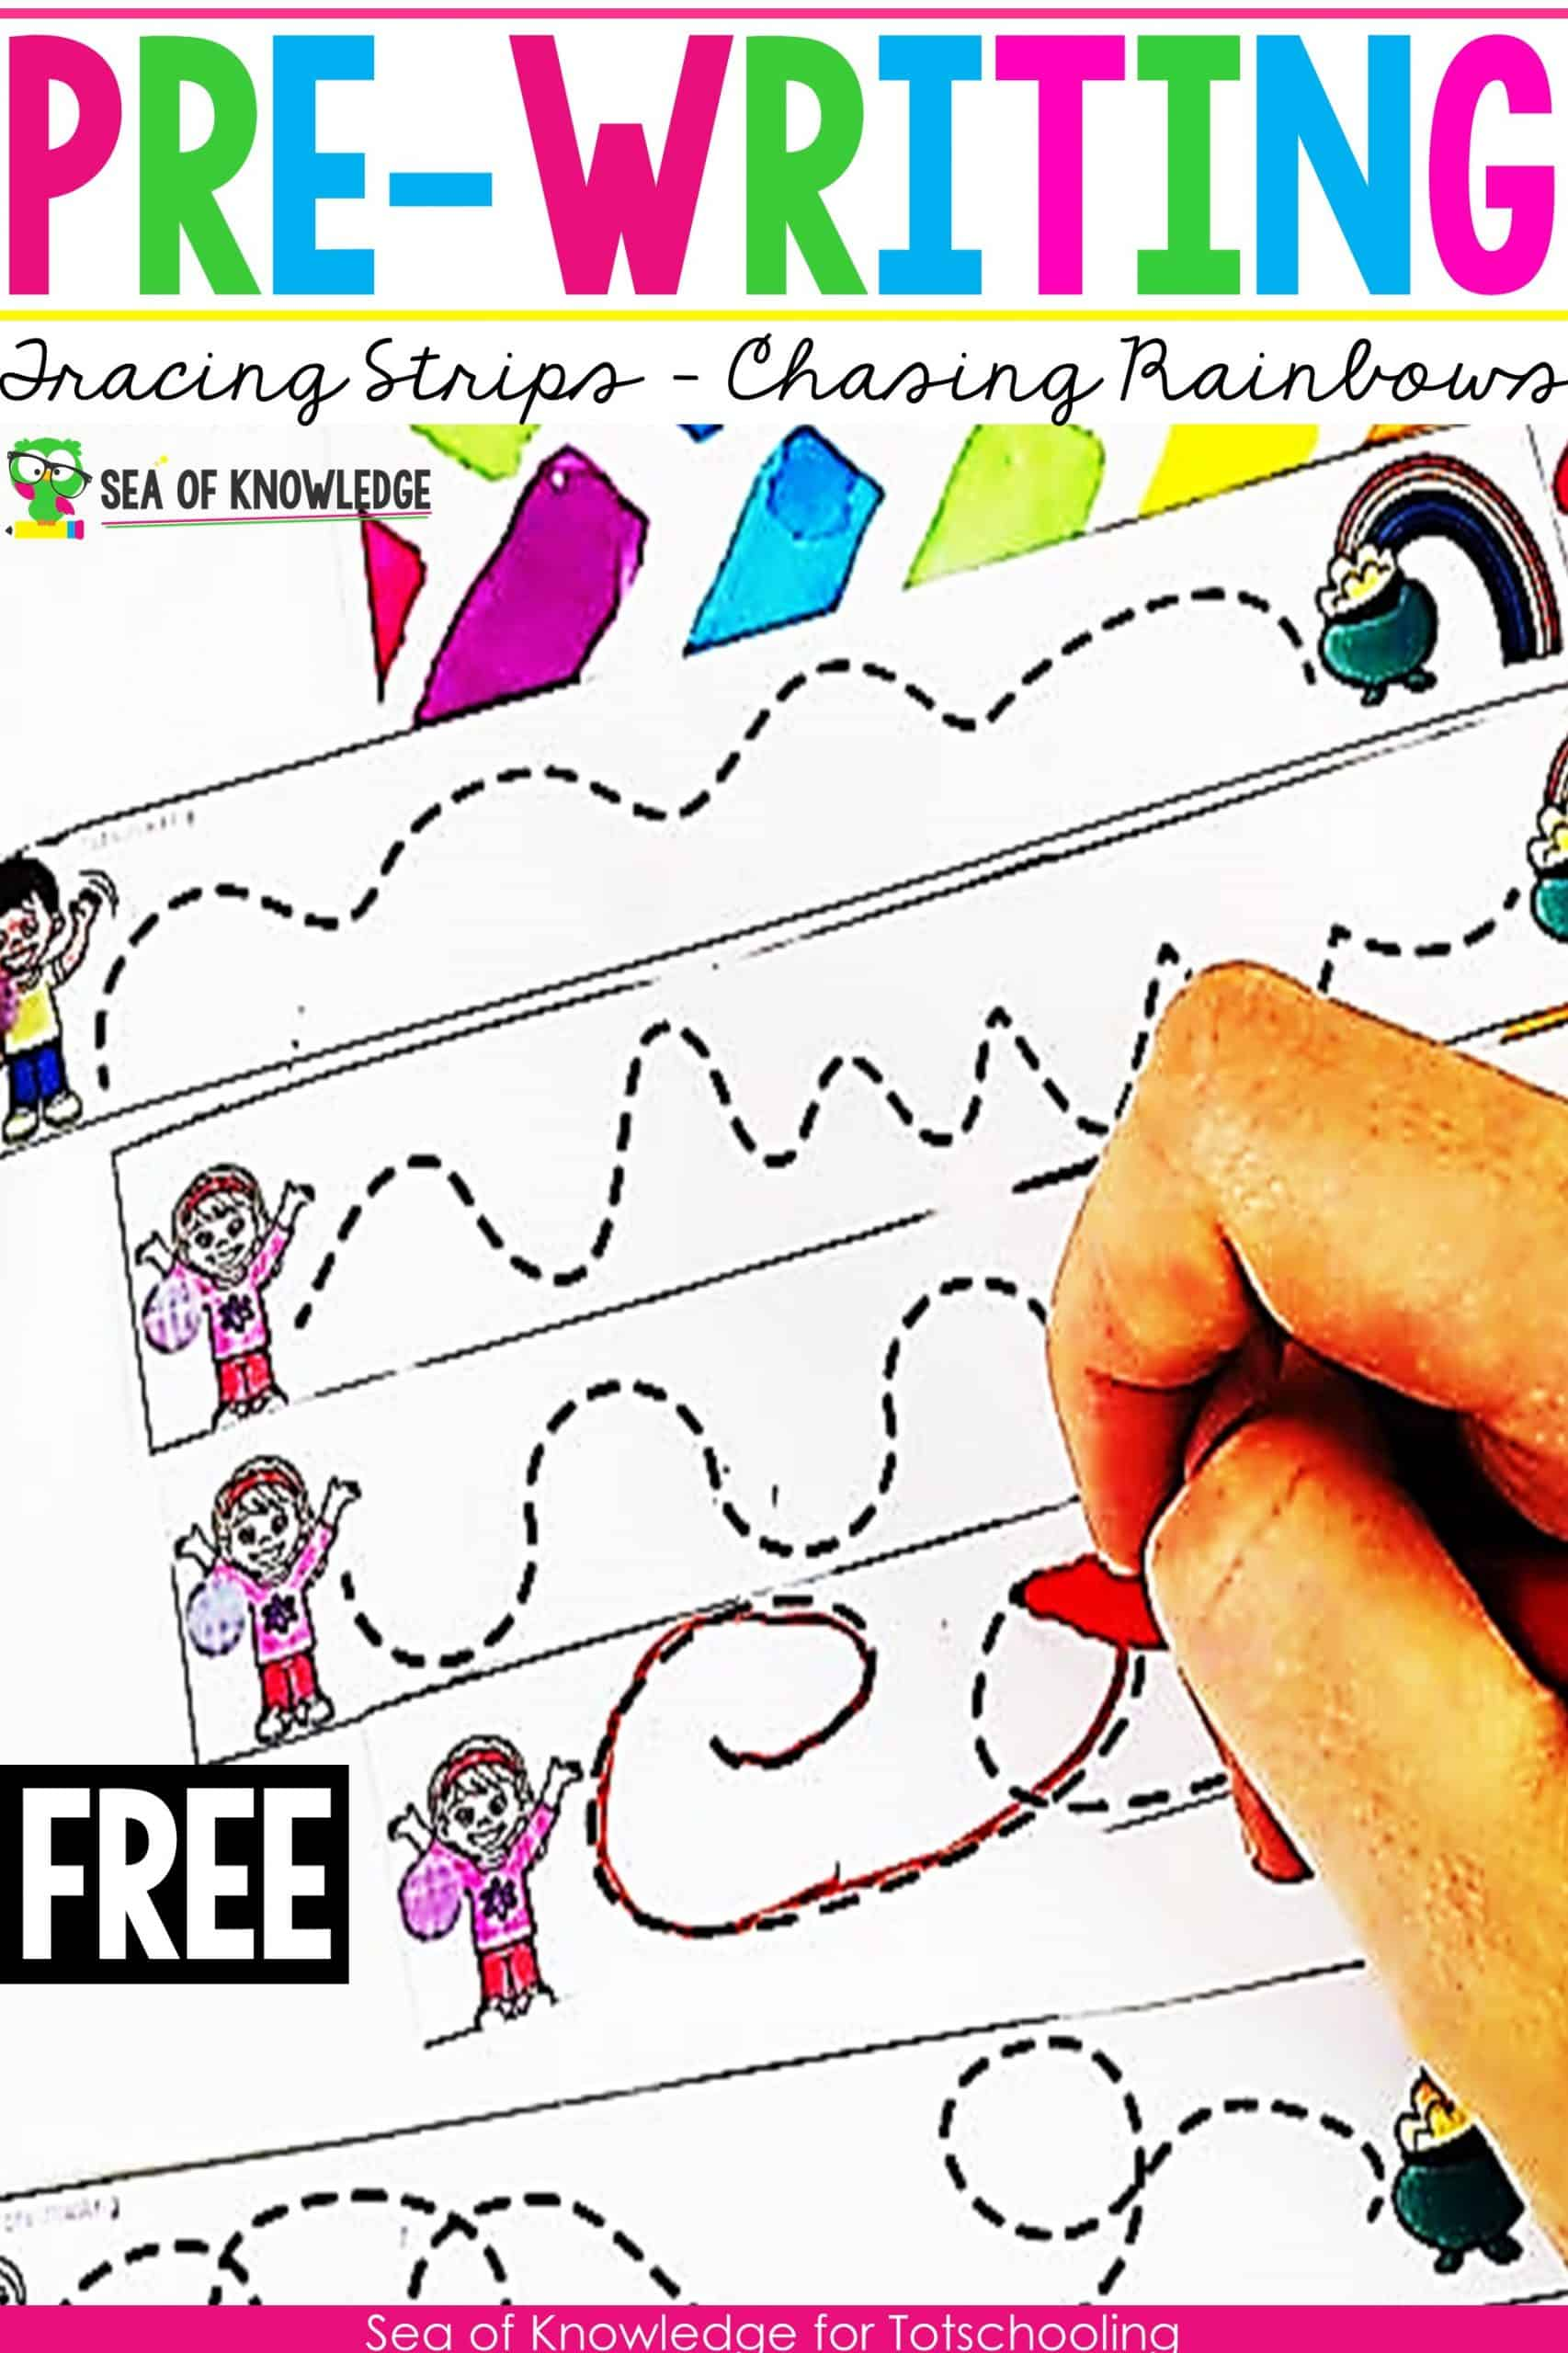 Chasing Rainbows Pre-writing Activities for Preschoolers They will LOVE